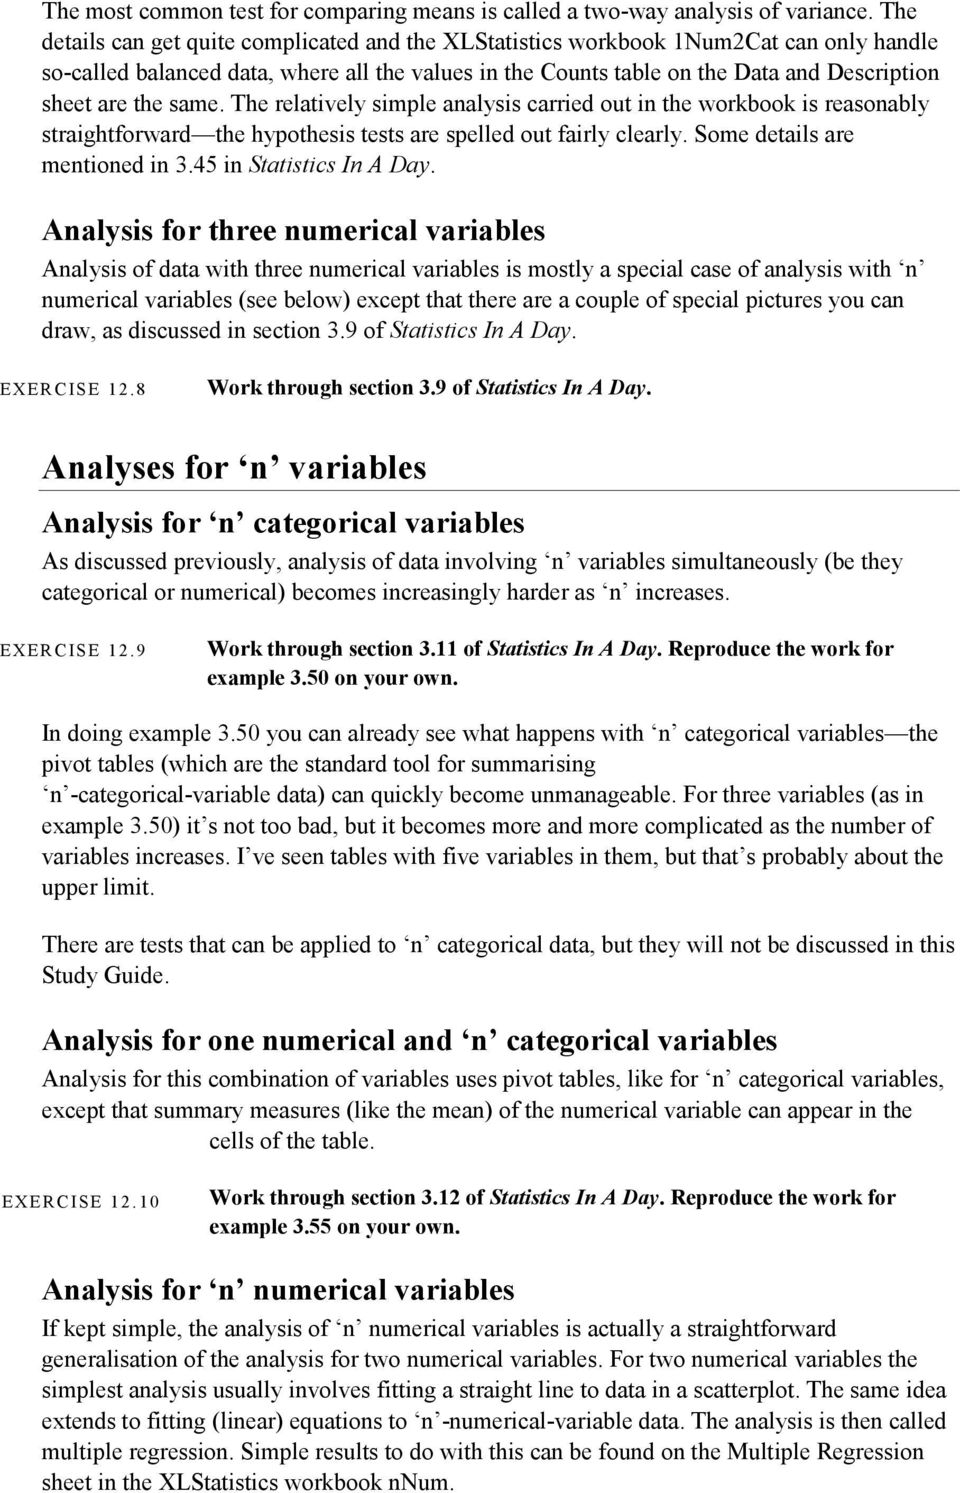 the same. The relatively simple analysis carried out in the workbook is reasonably straightforward the hypothesis tests are spelled out fairly clearly. Some details are mentioned in 3.